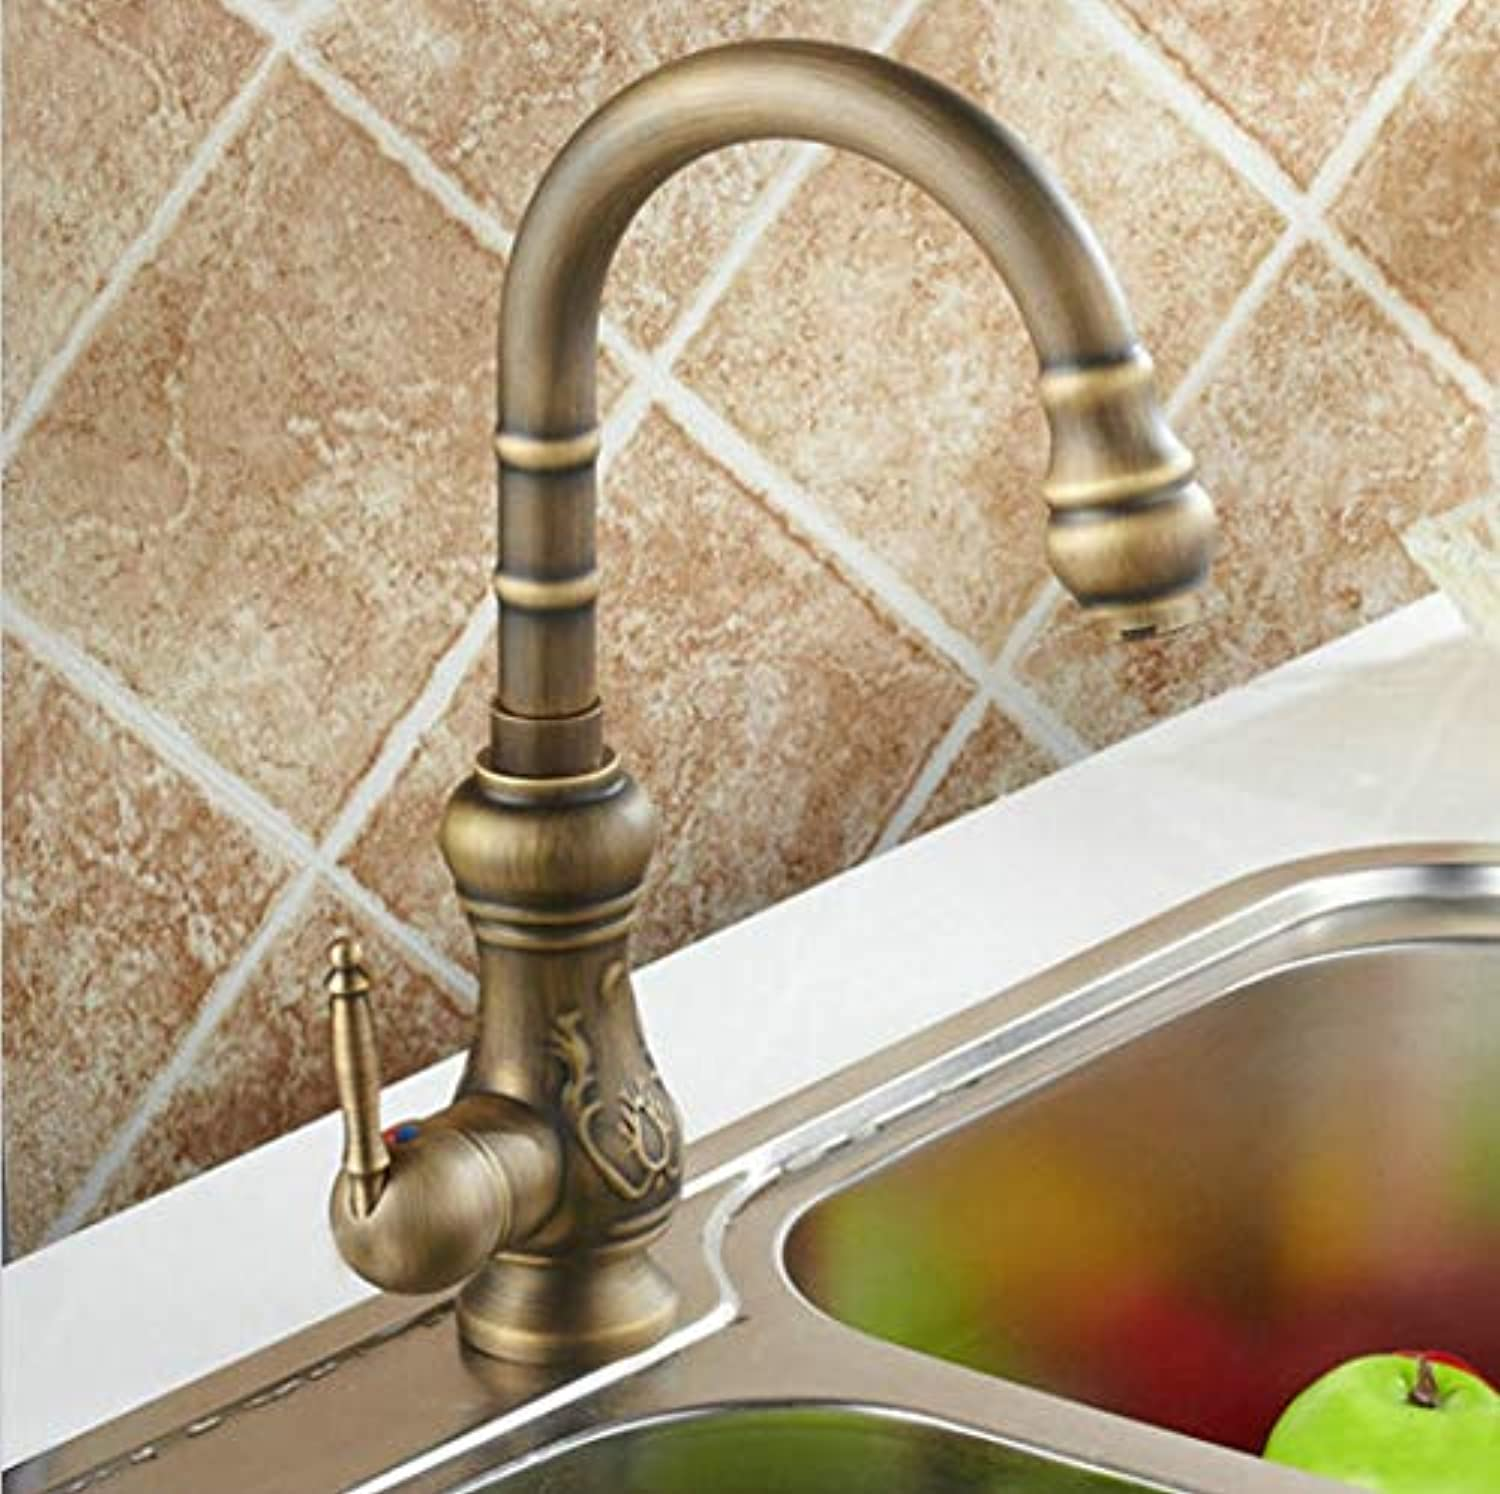 YUJING Kitchen Mixer Taps Antique Brass Finished Hot&Cold Mixer Taps Deck Mounted Carving Faucet